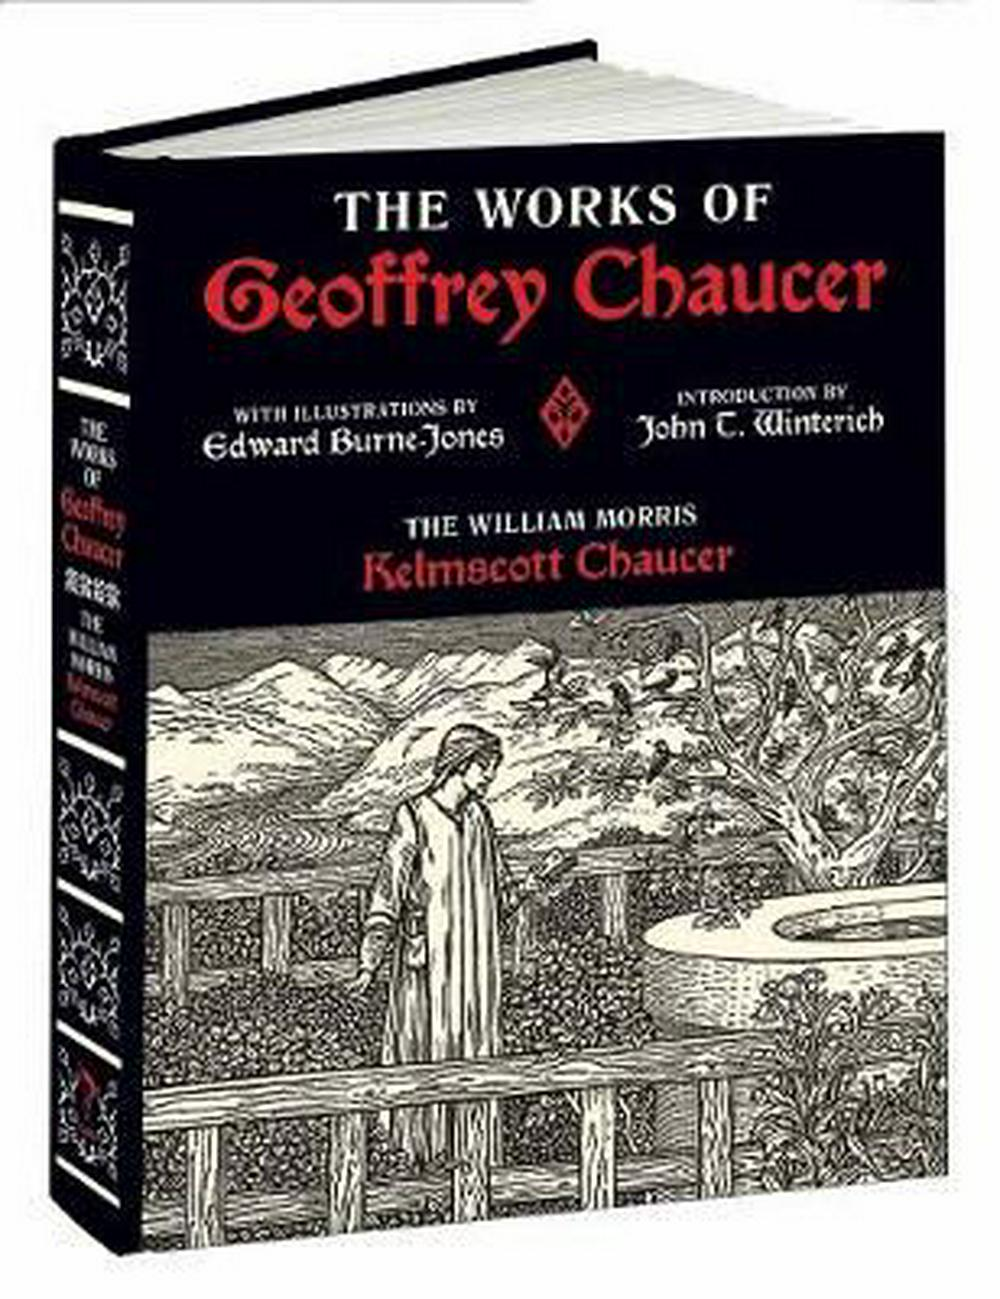 Works of Geoffrey ChaucerThe William Morris Kelmscott Chaucer